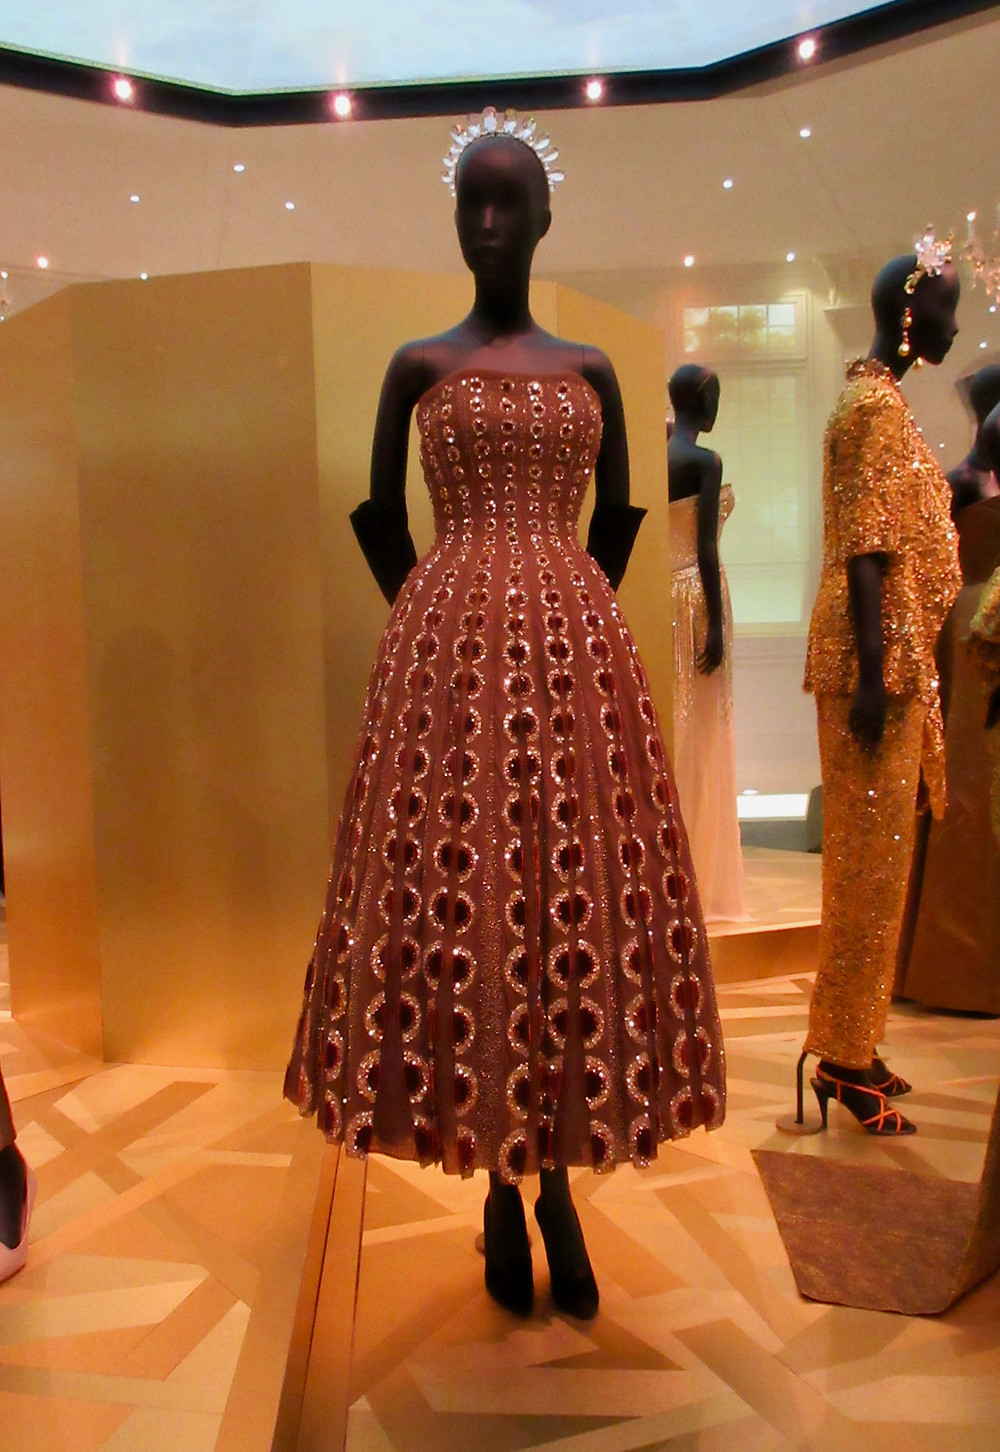 Esther Dress, Christian Dior Haute Couture Autumn/Winter 1952 Velvet and silk tulle with beads.